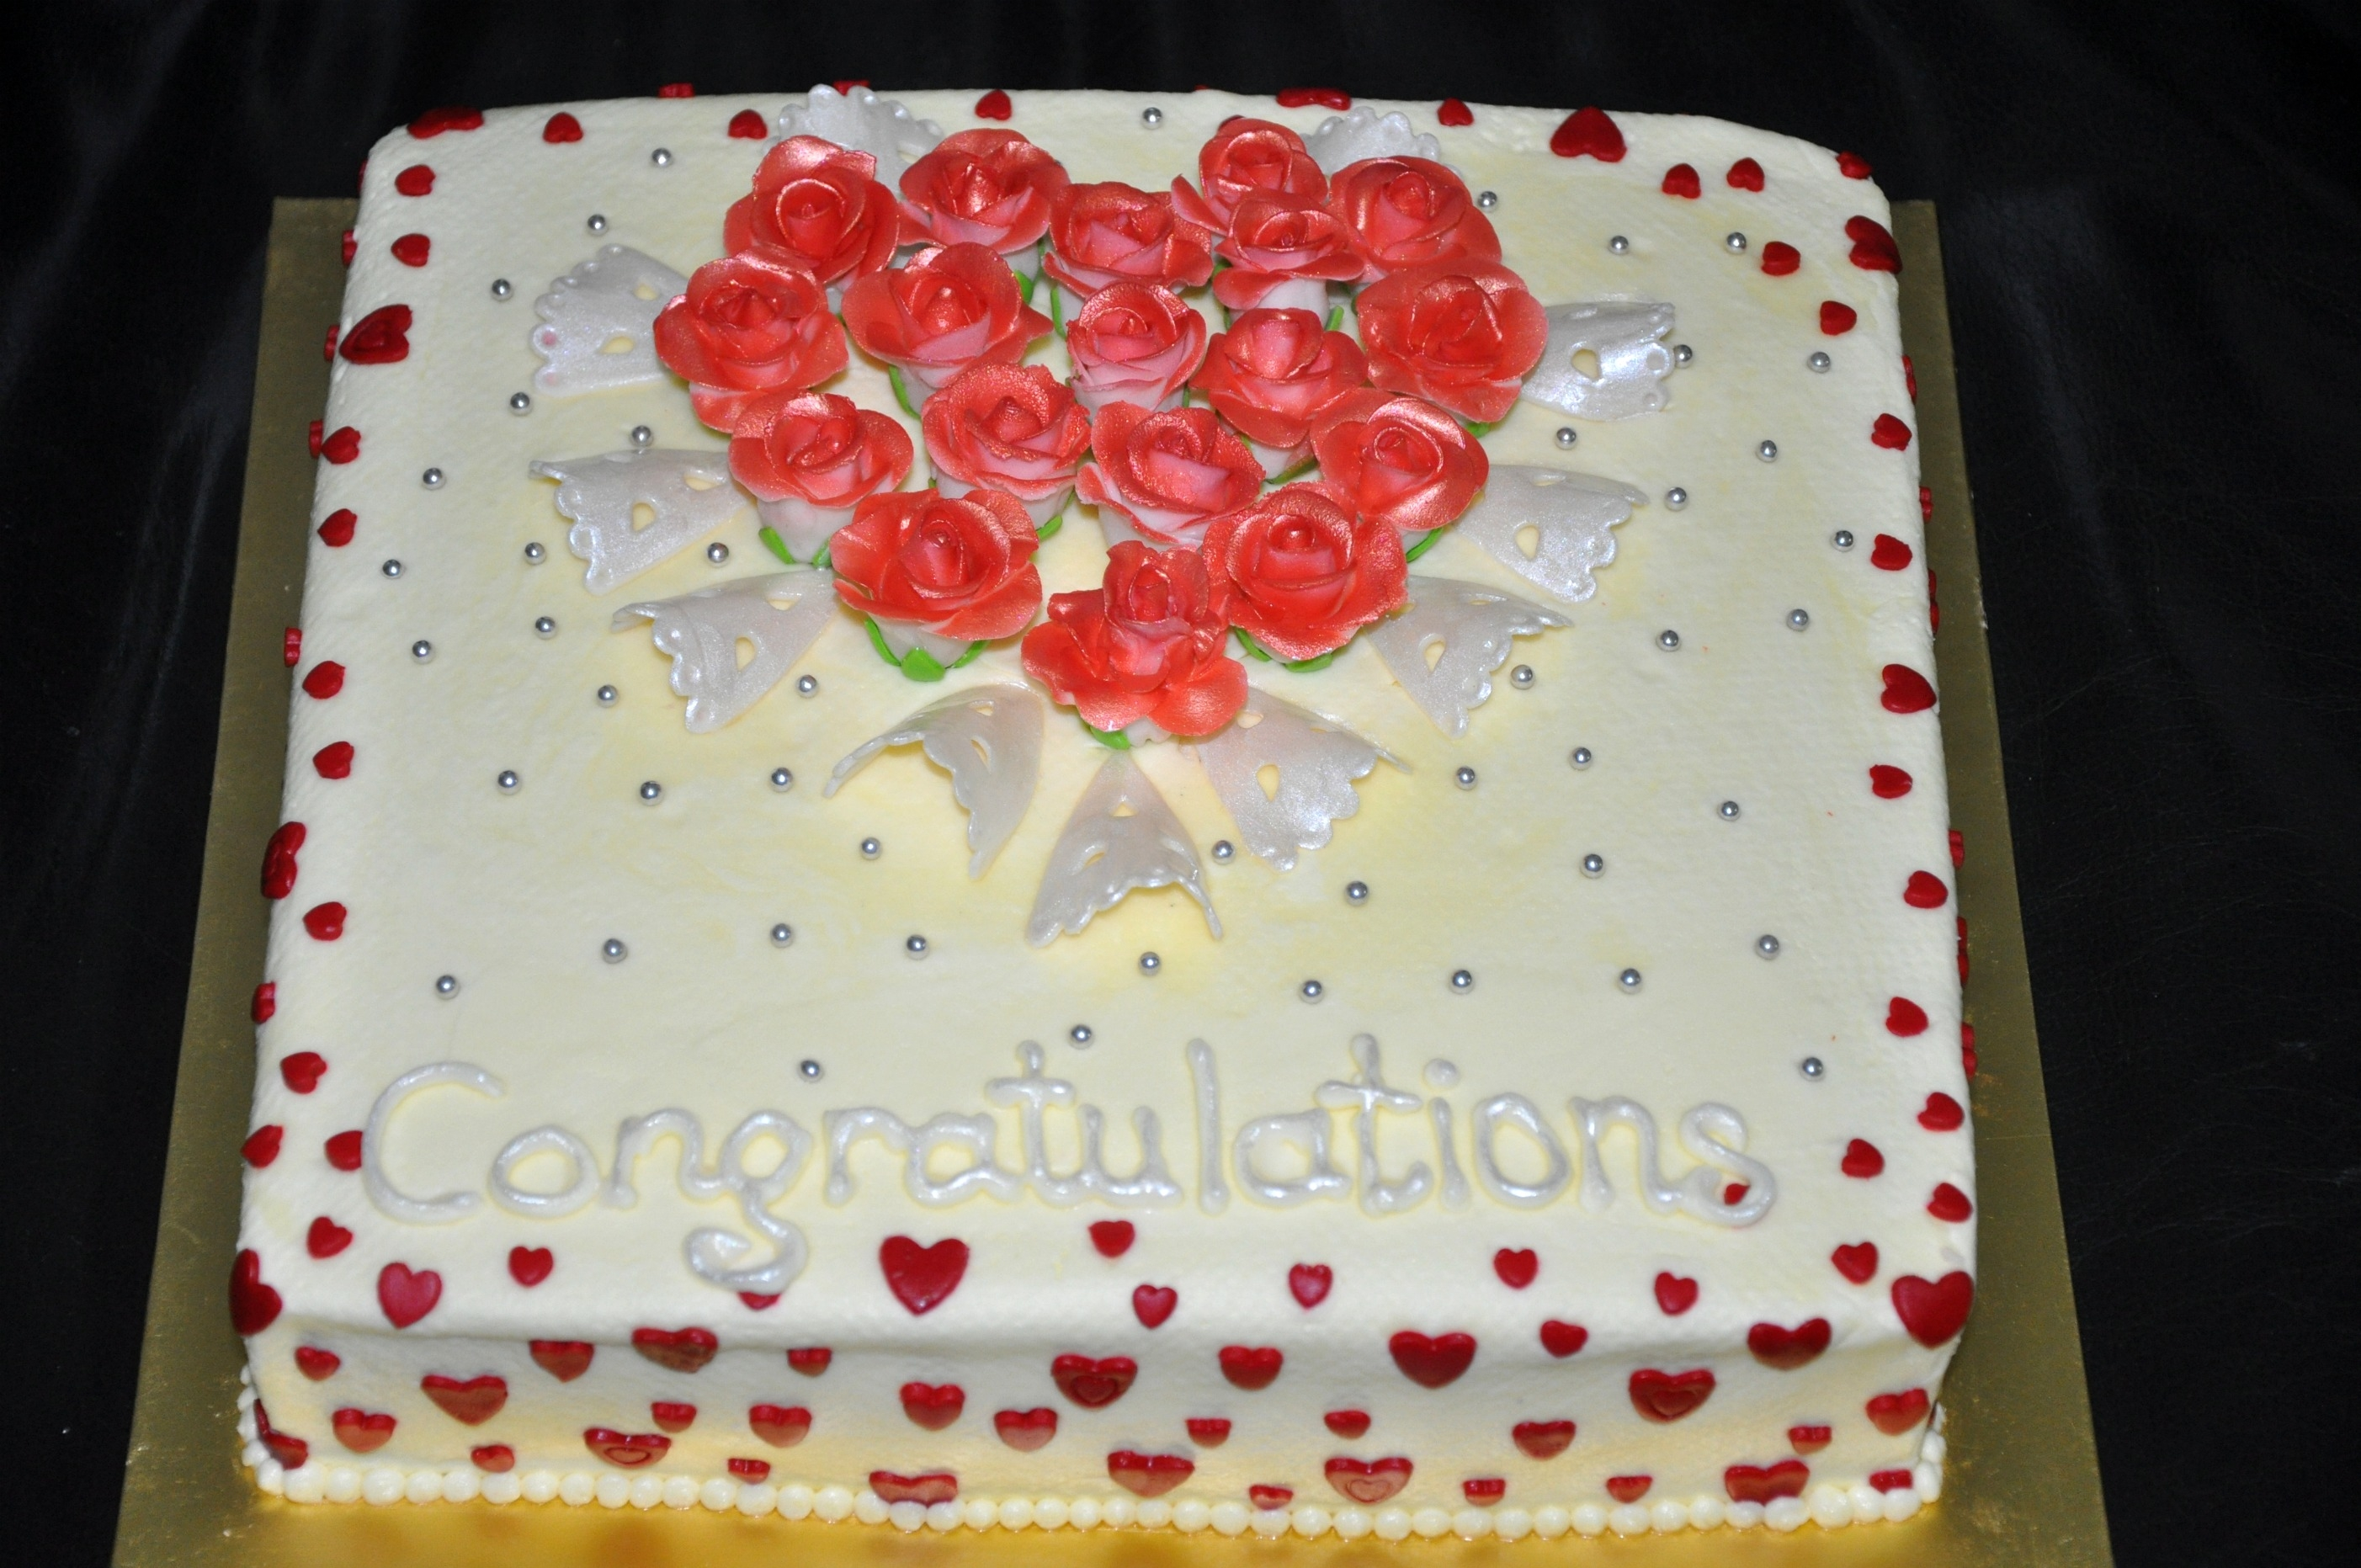 With Butter Icing And Fondant Accents All Edible Thank You   With Butter icing and fondant accents. All edible. Thank you =)